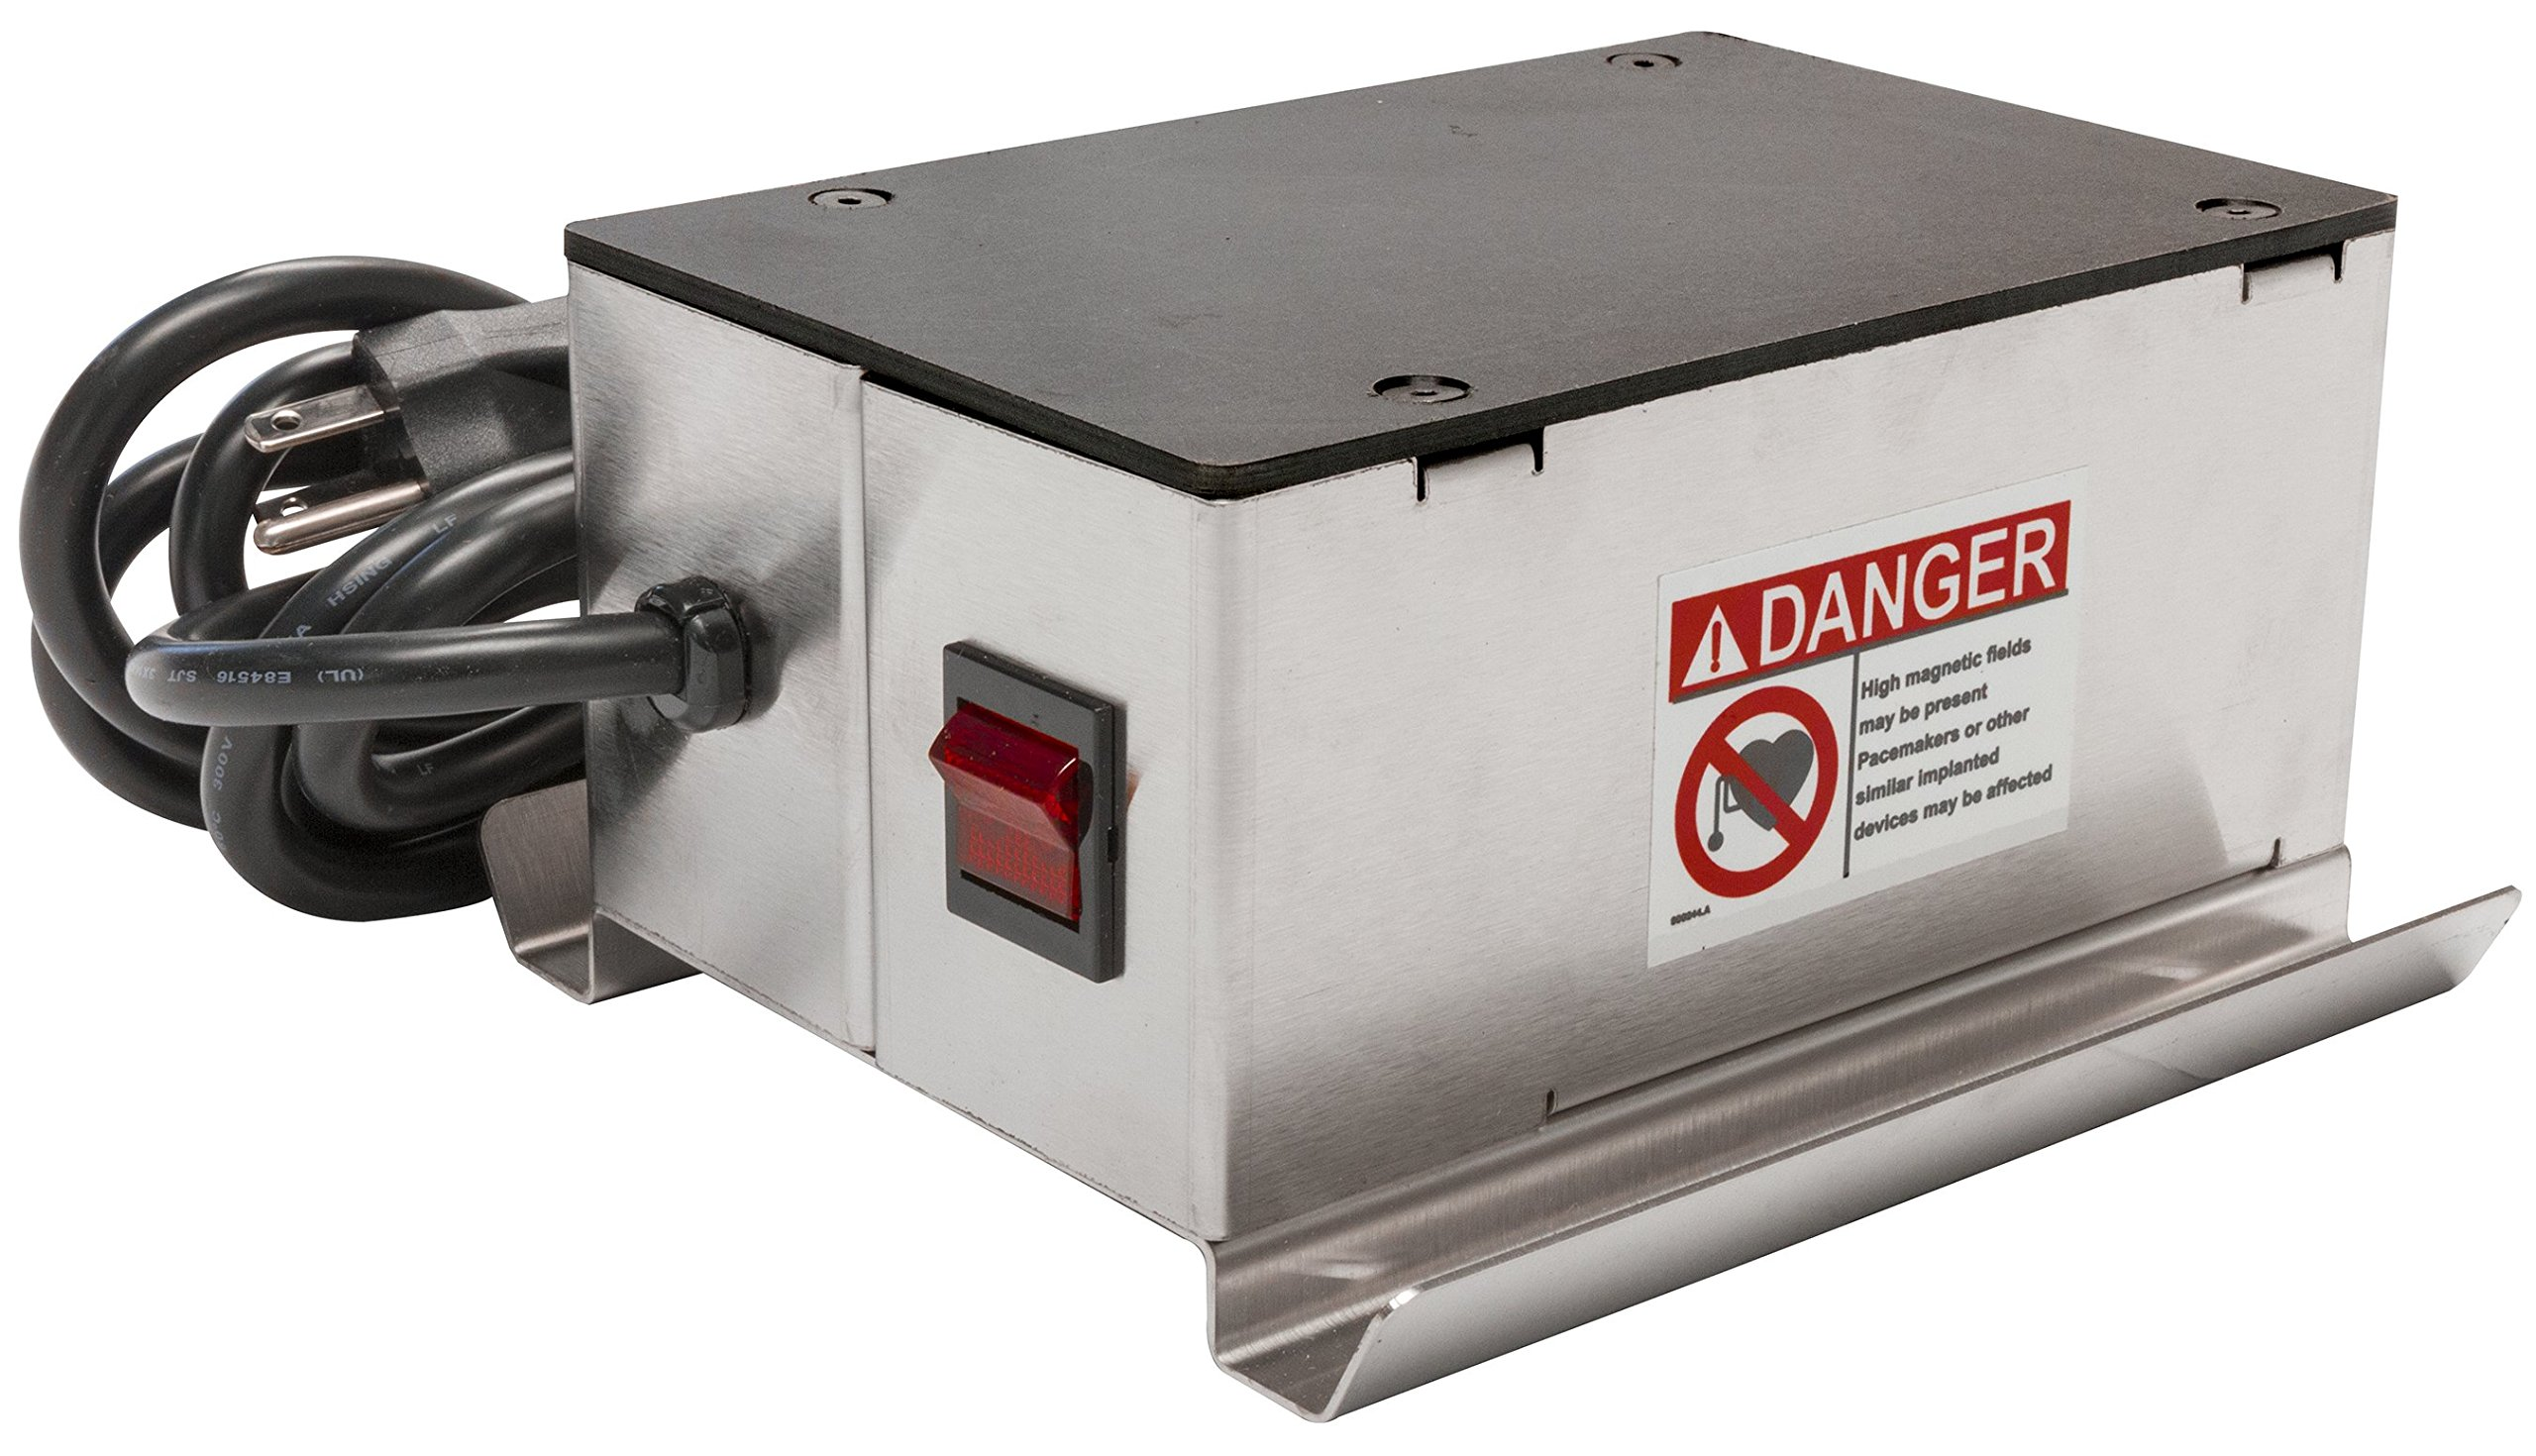 MAG-MATE DSC423-120 Continuous Duty Surface Demagnetizer with Cord Plug, 120 VAC/2.1 Amp/6'